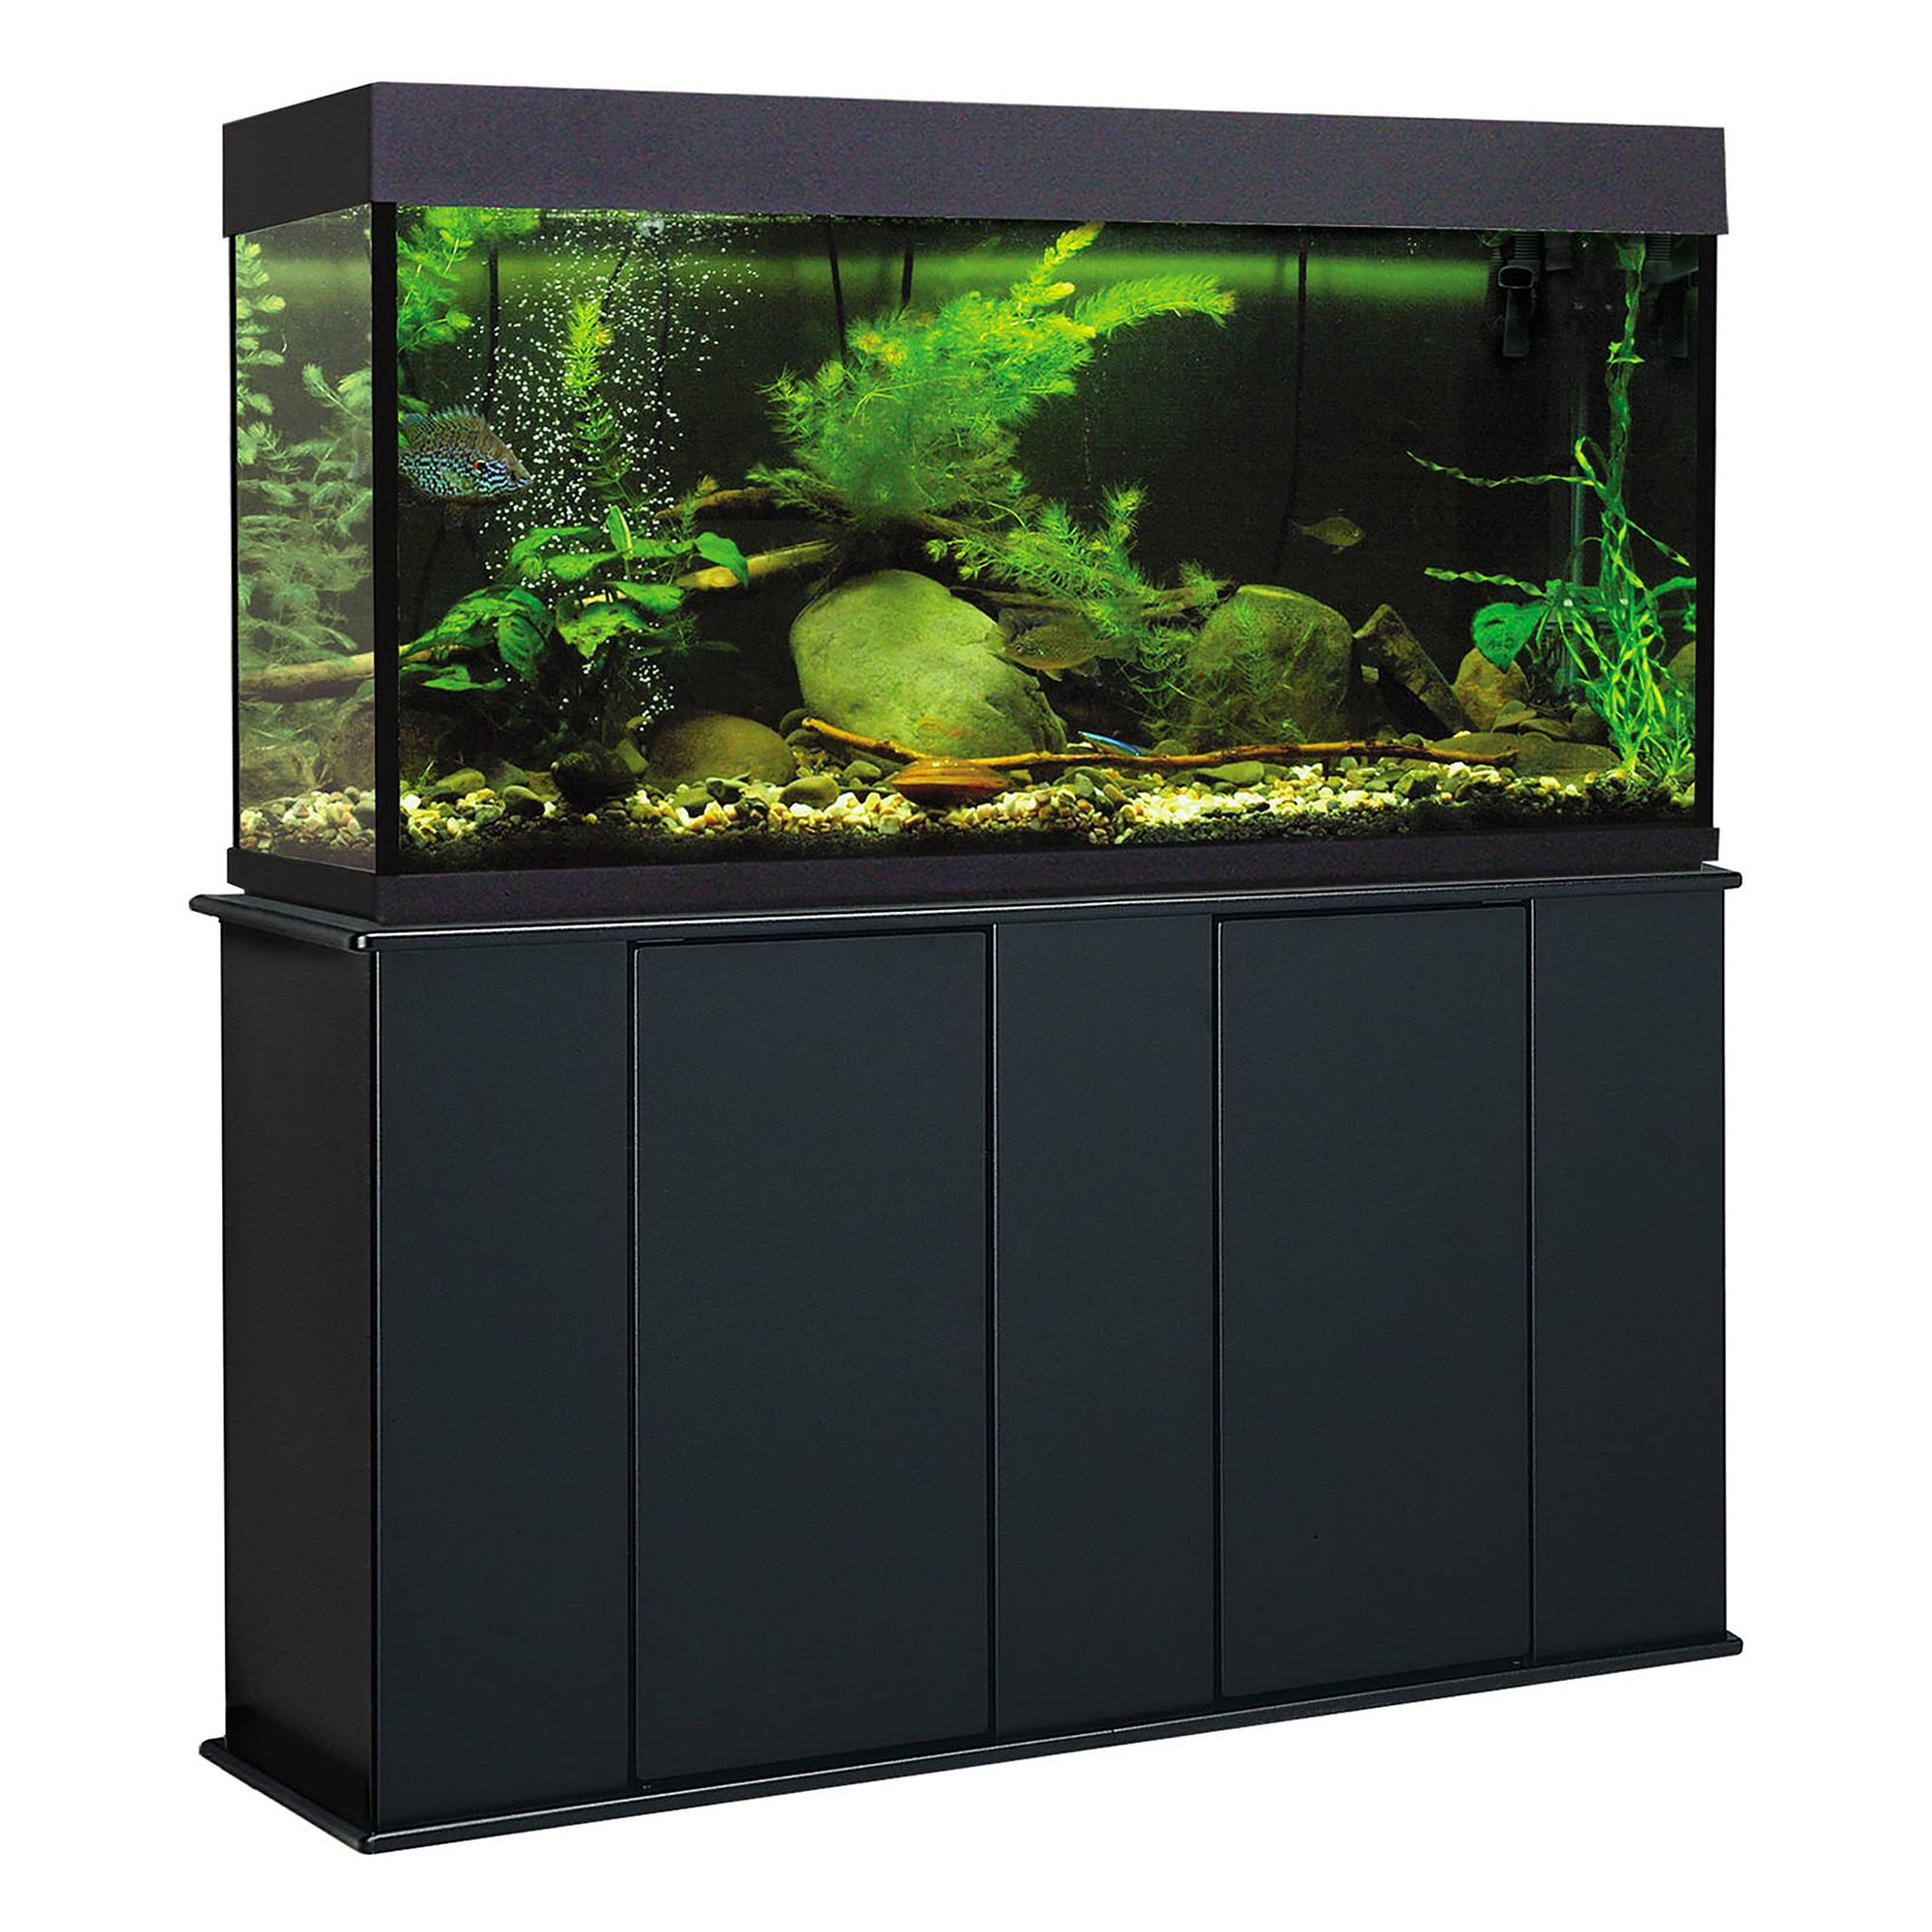 Marco 55 Gallon Upright Aquarium Stand Black